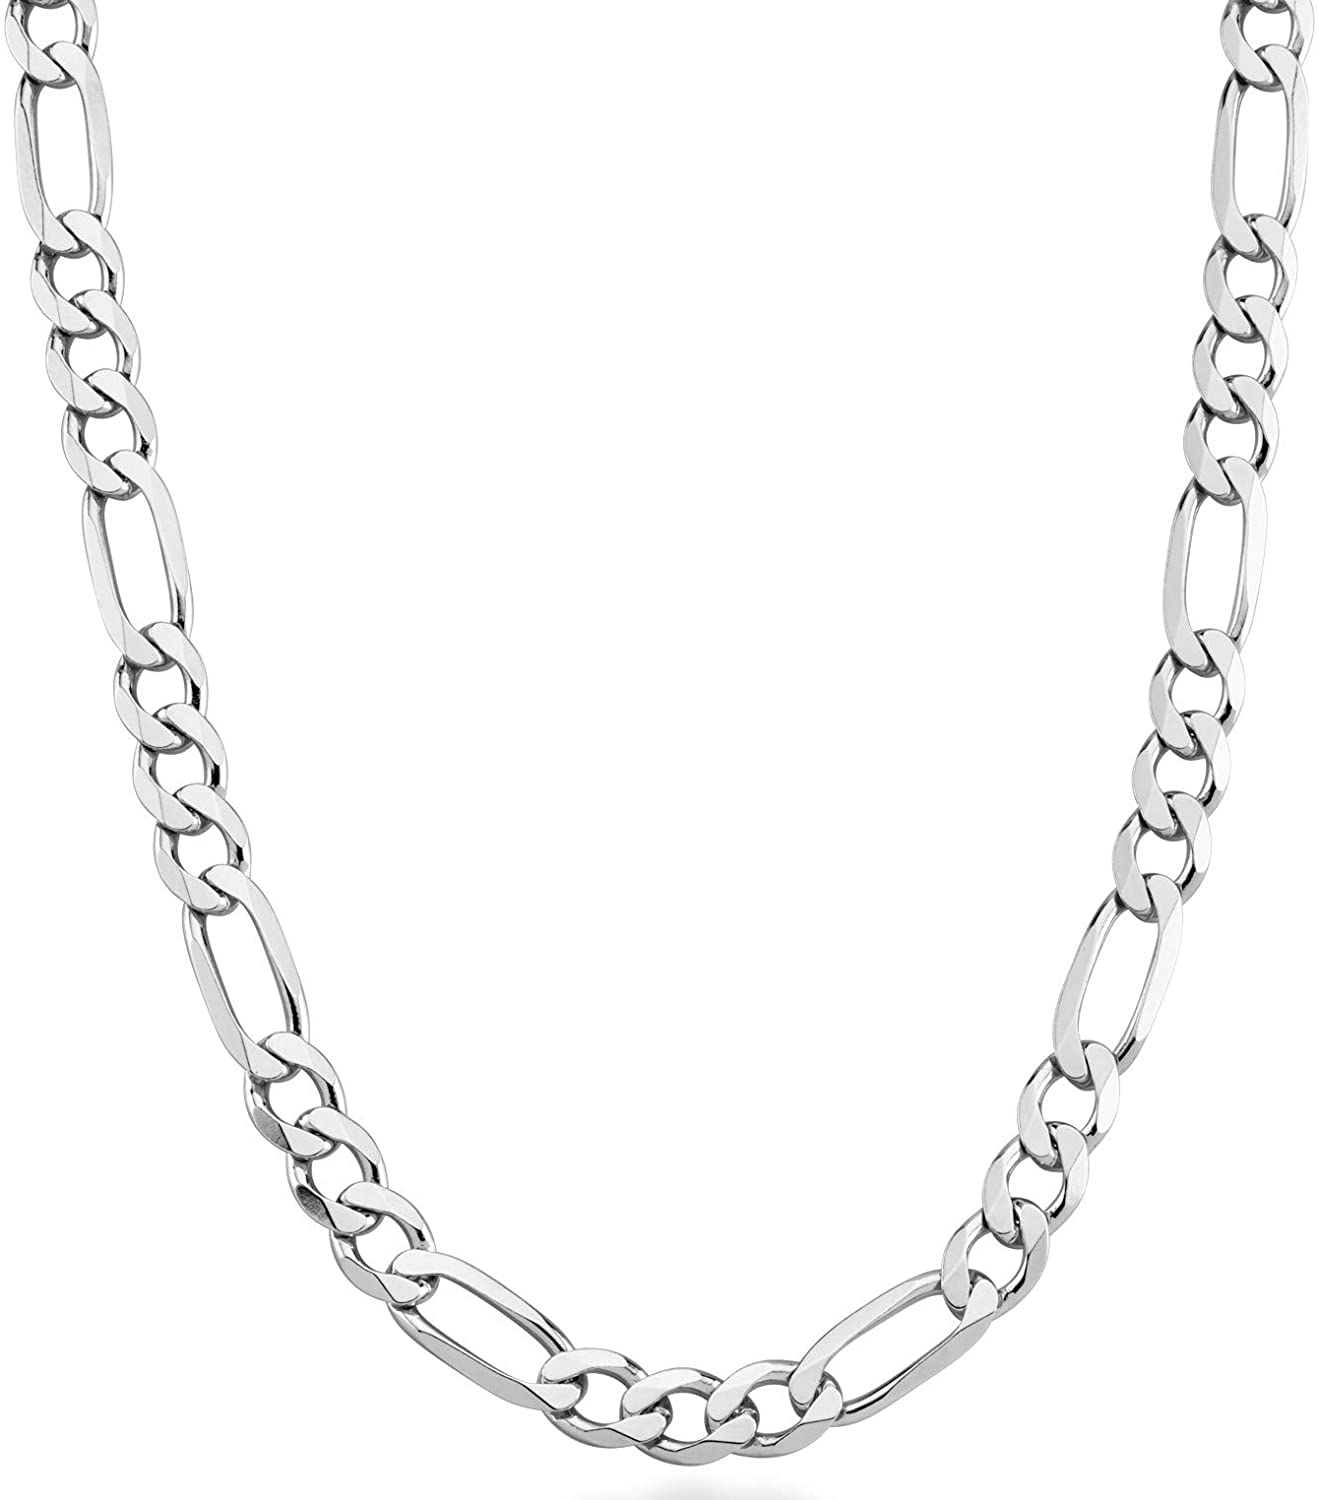 Miabella 925 Sterling Silver Italian 7mm Solid Diamond-Cut Figaro Link Chain Necklace for Men, 18, 20, 22, 24, 26, 30 Inches